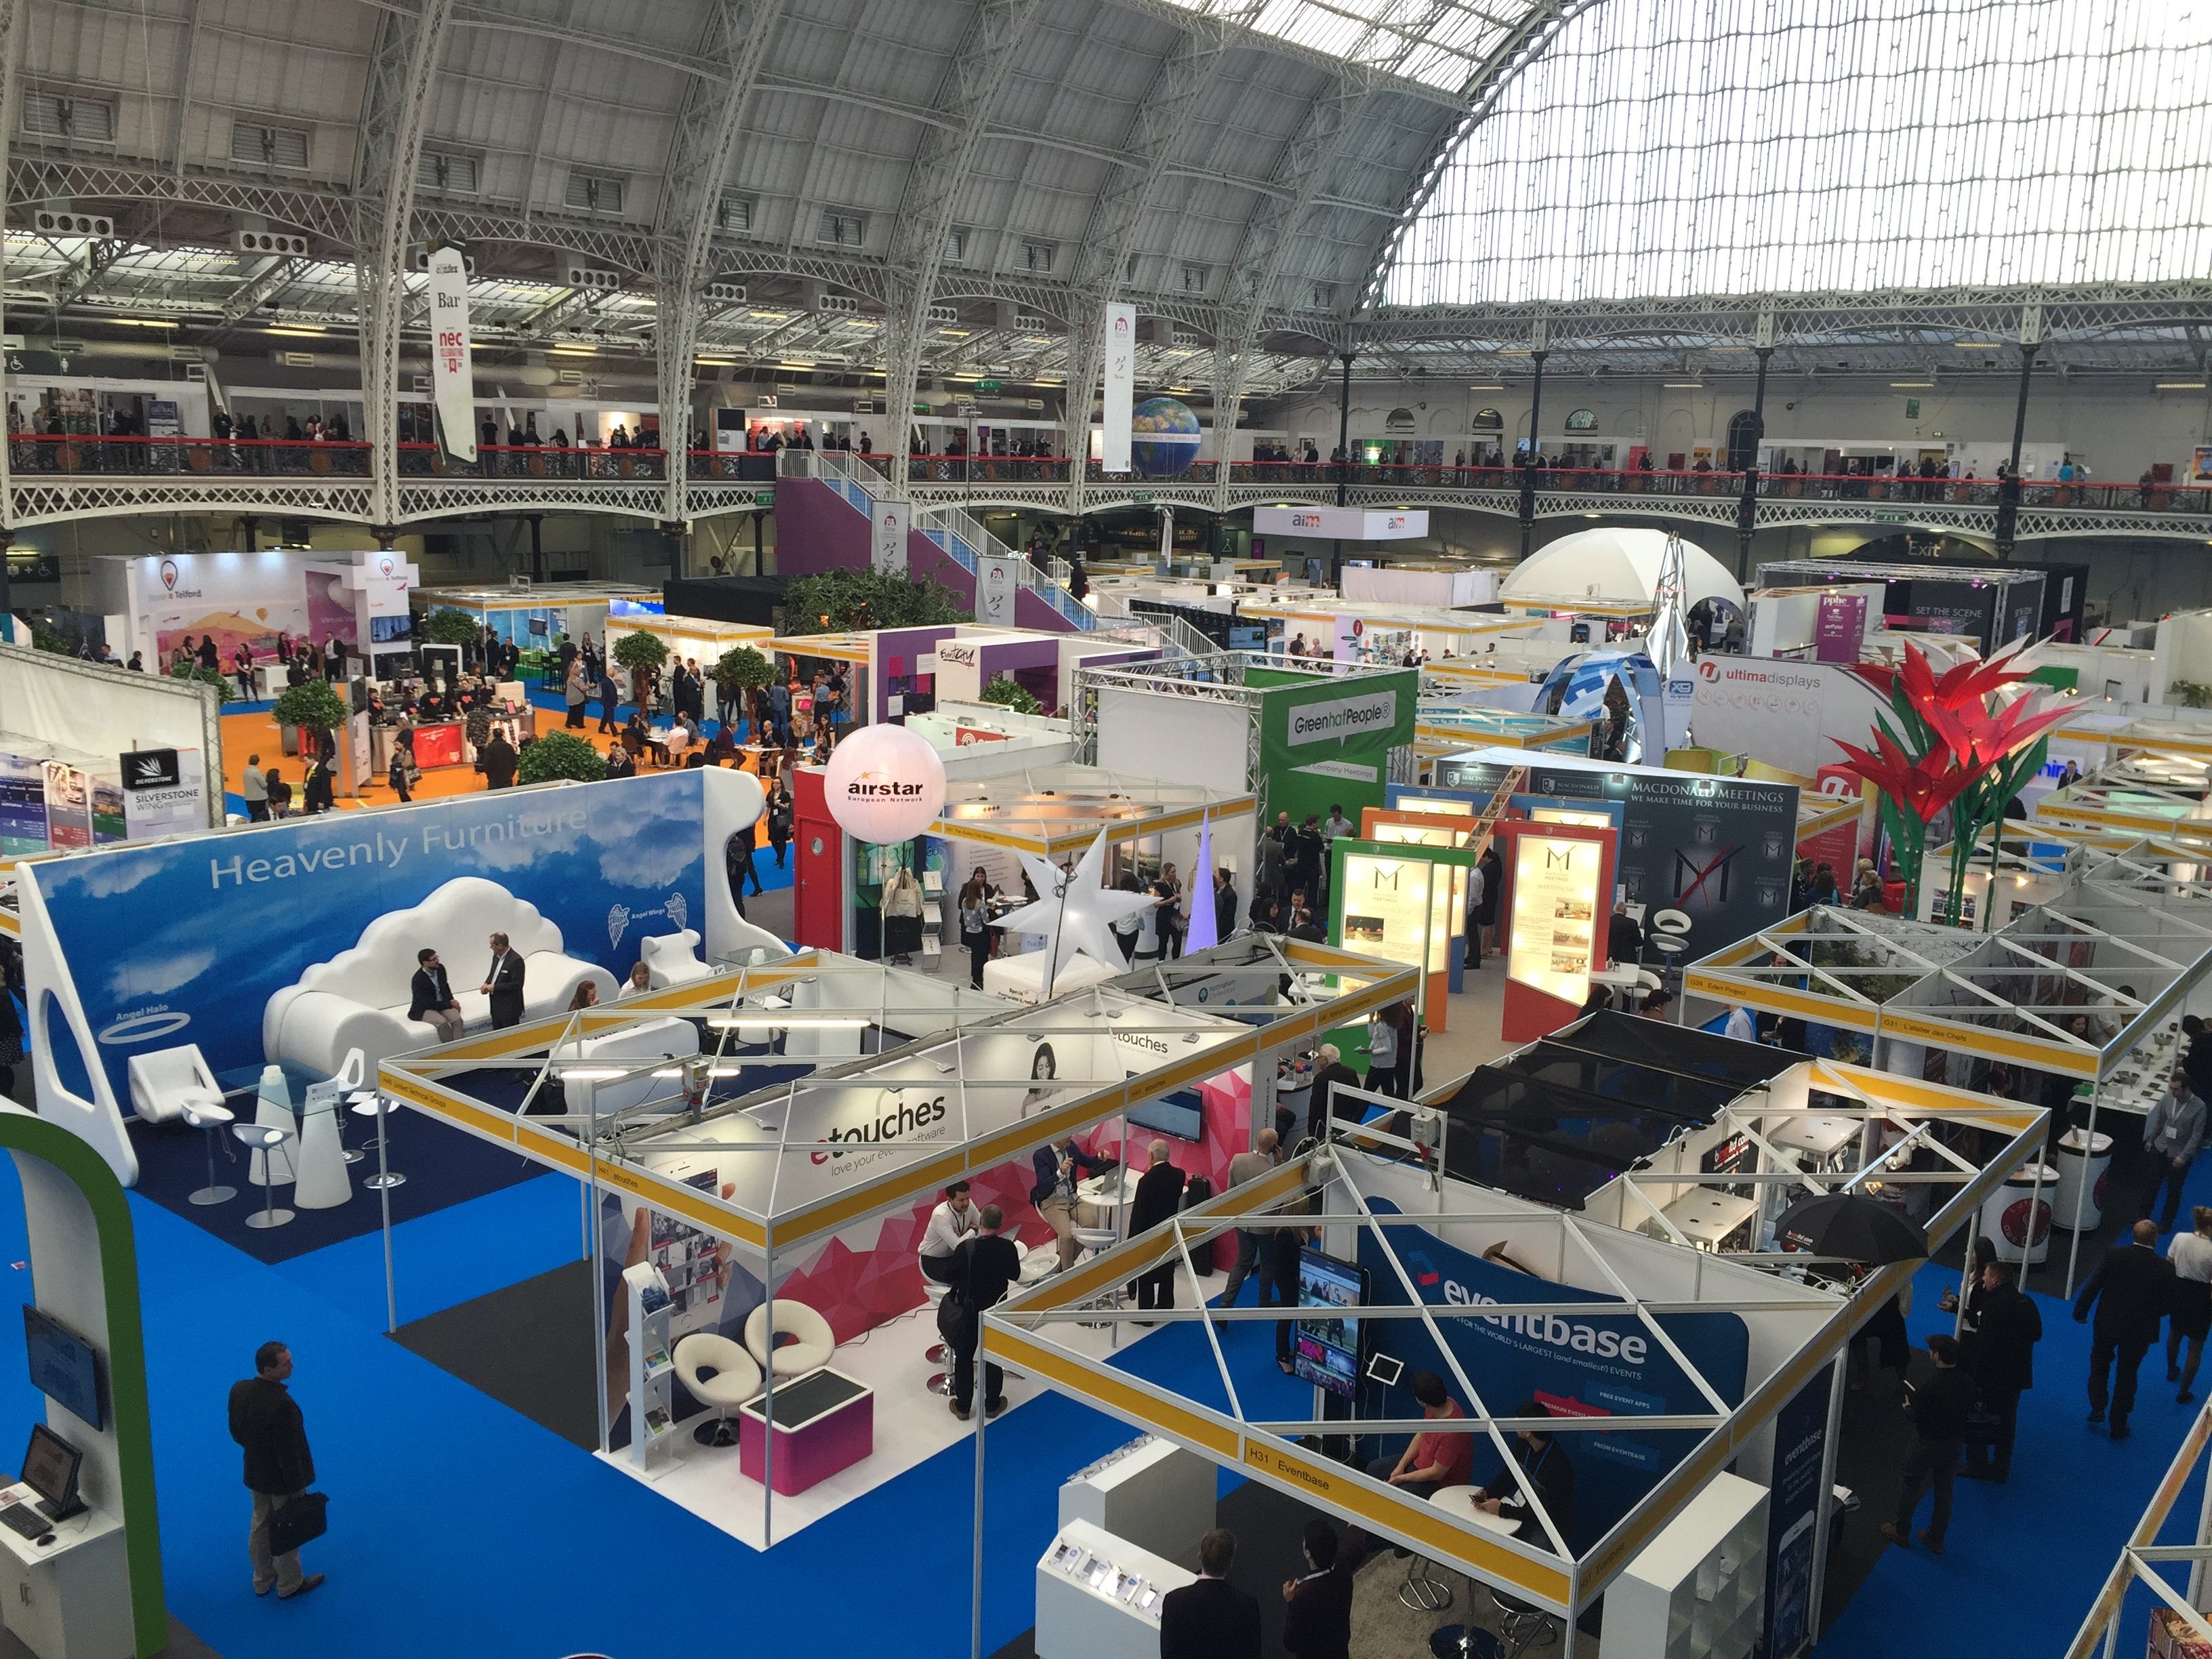 The confex show at London Olympia